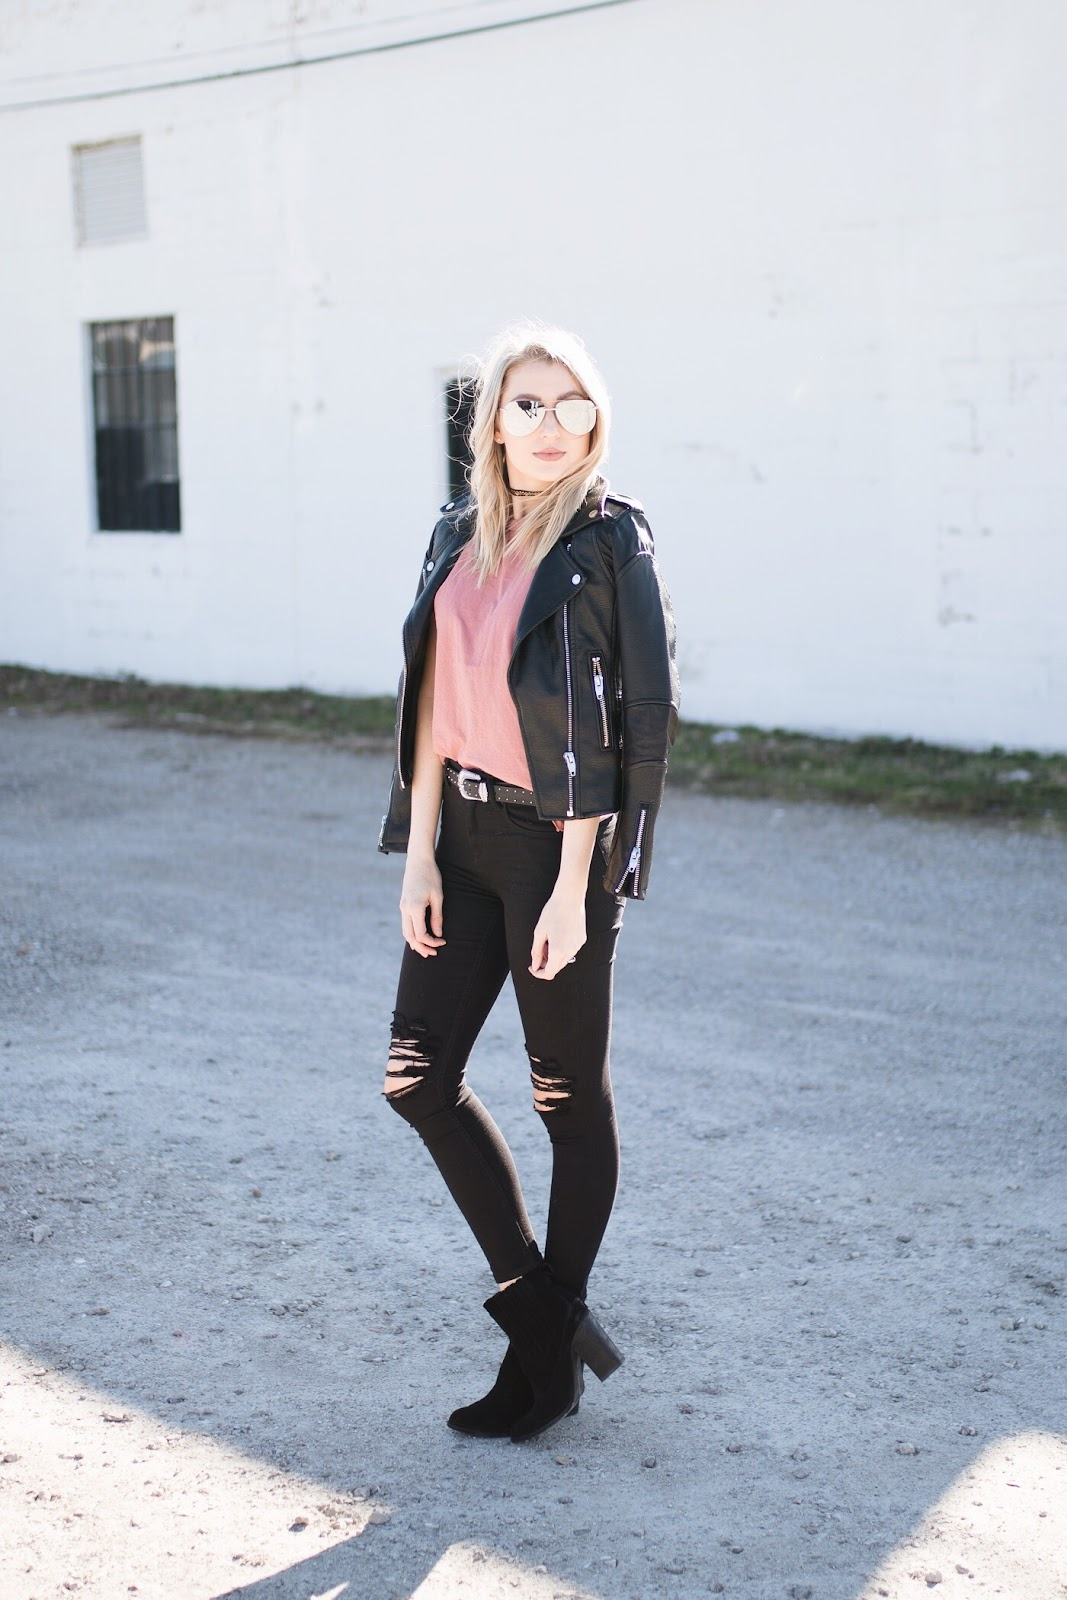 Edgy winter outfit // faux leather jacket draped over a tee and distressed jeans